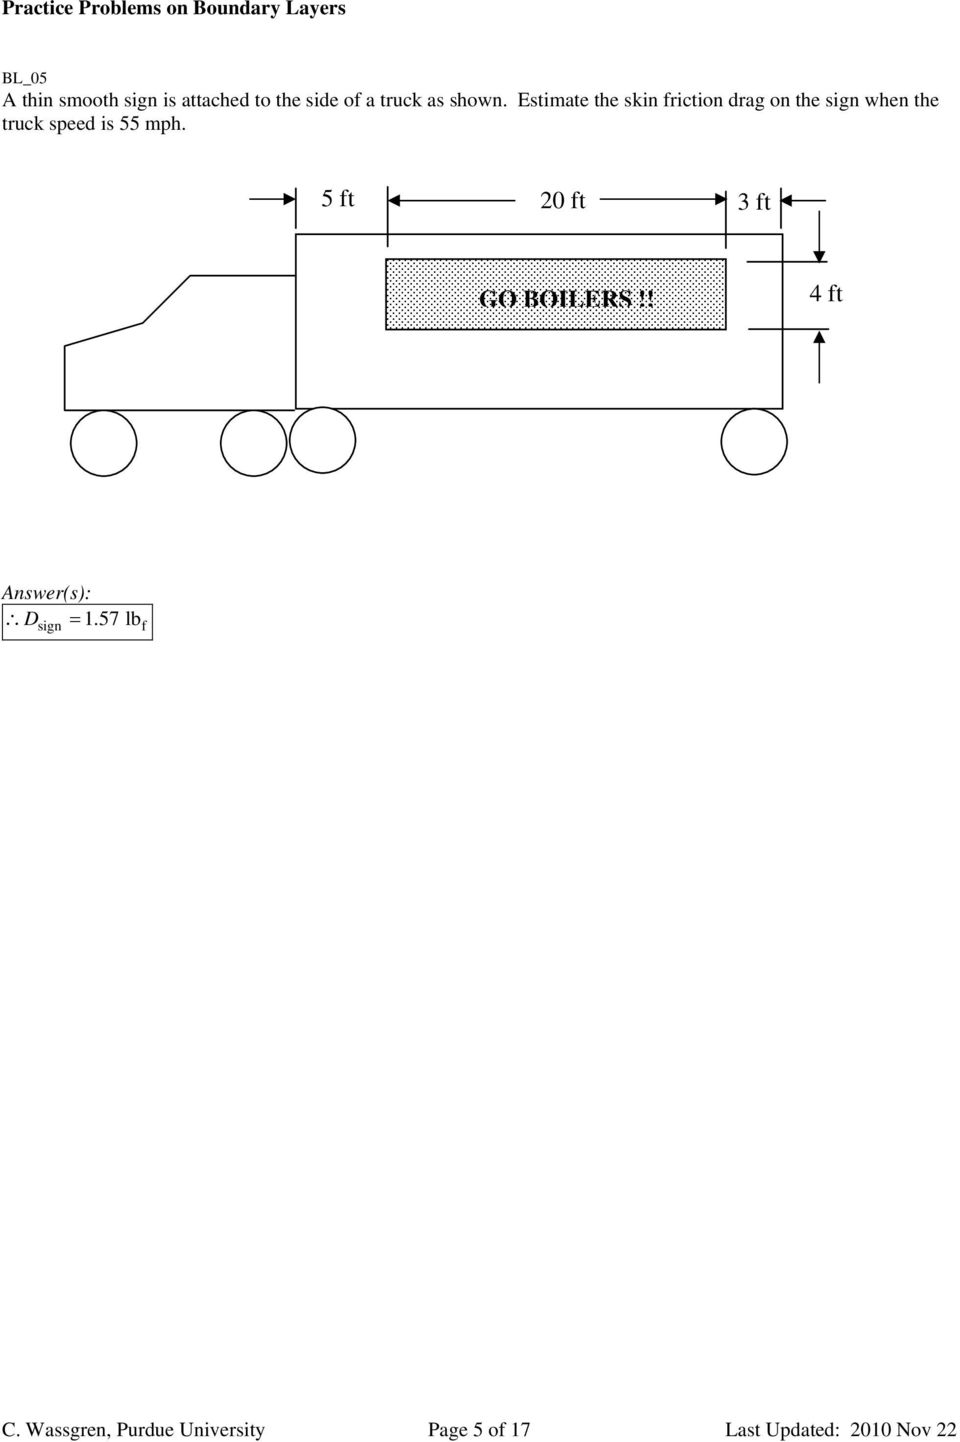 Estimate the skin friction drag on the sign when the truck speed